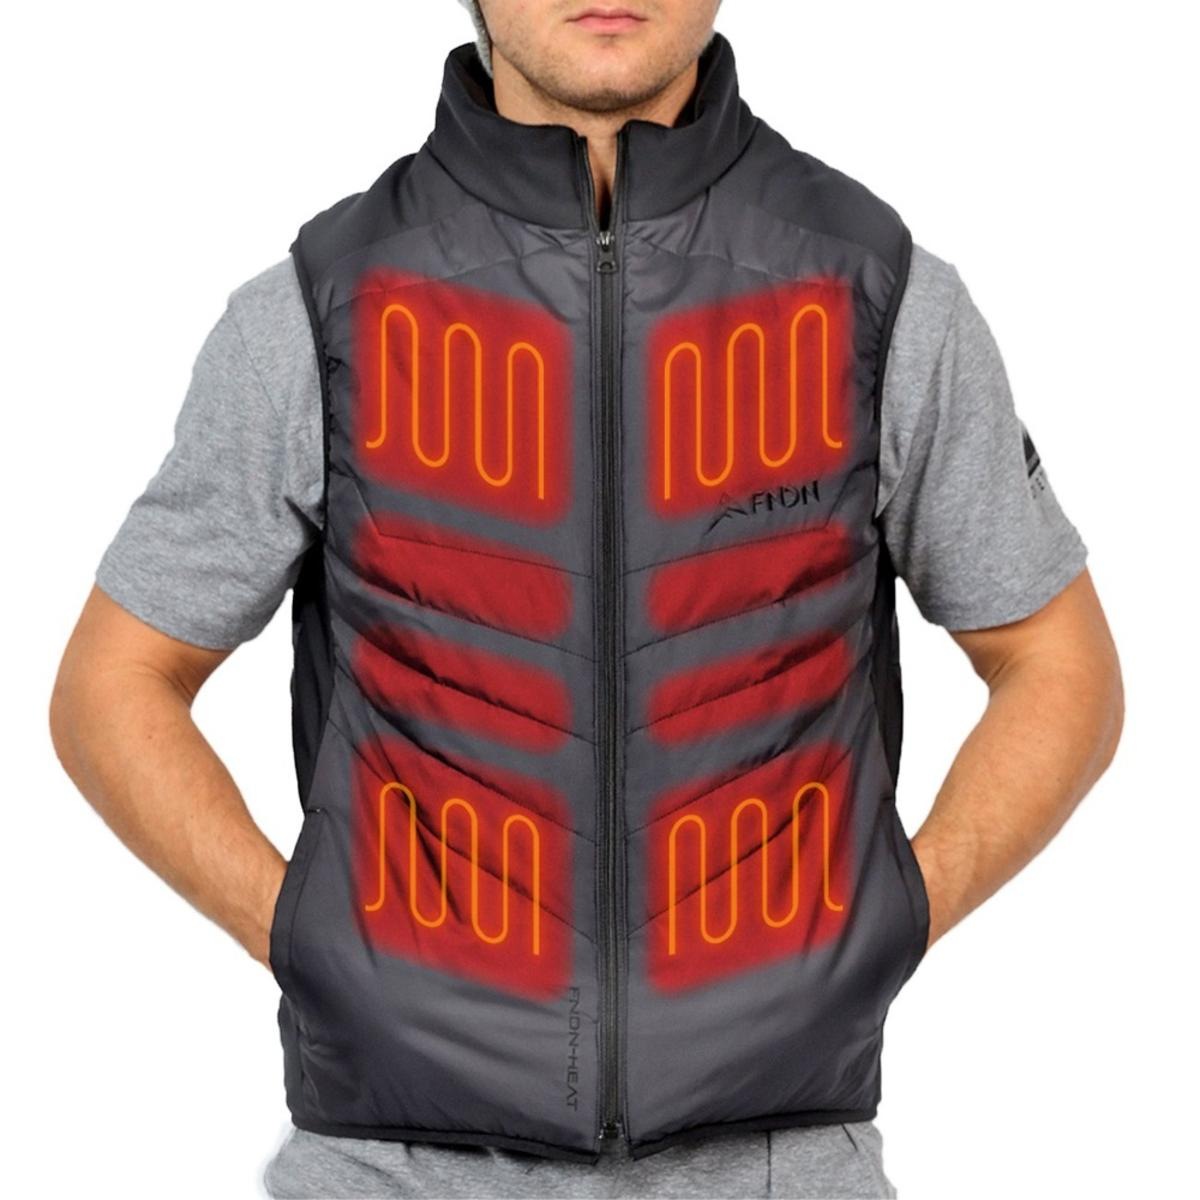 0ce2058e39b FNDN Unisex PRO Heated USB 5V Vest - The Warming Store